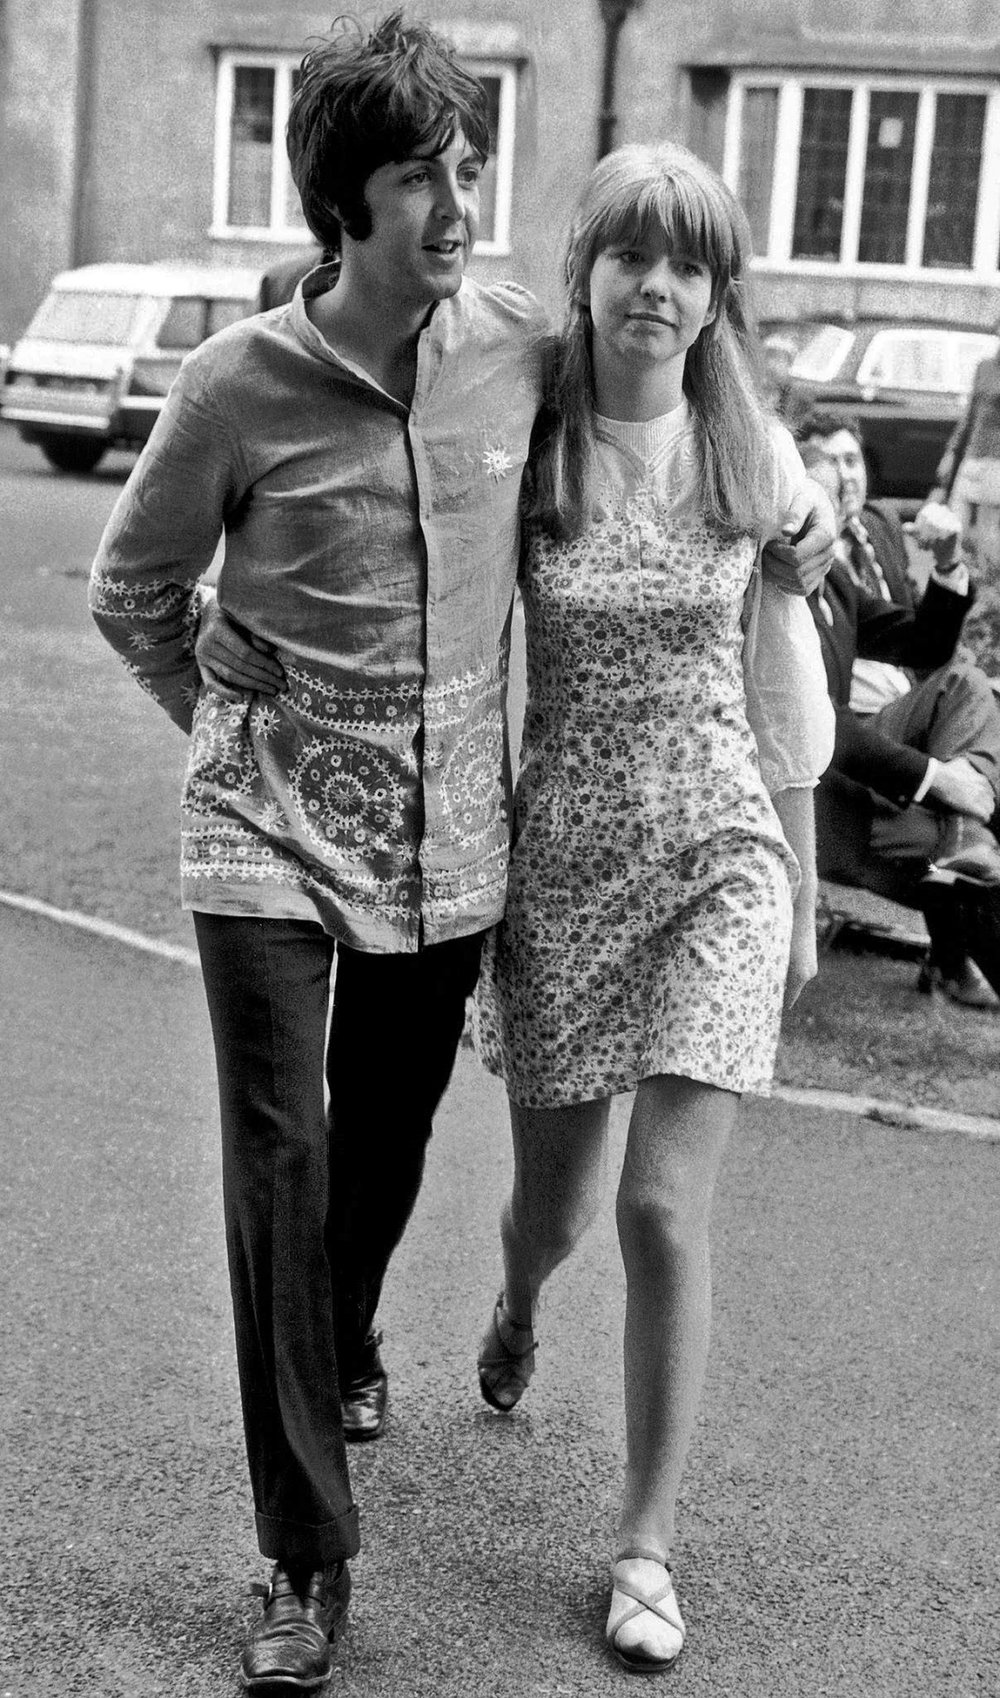 Paul McCartney and Jane Asher in Bangor, Wales, August 1967.